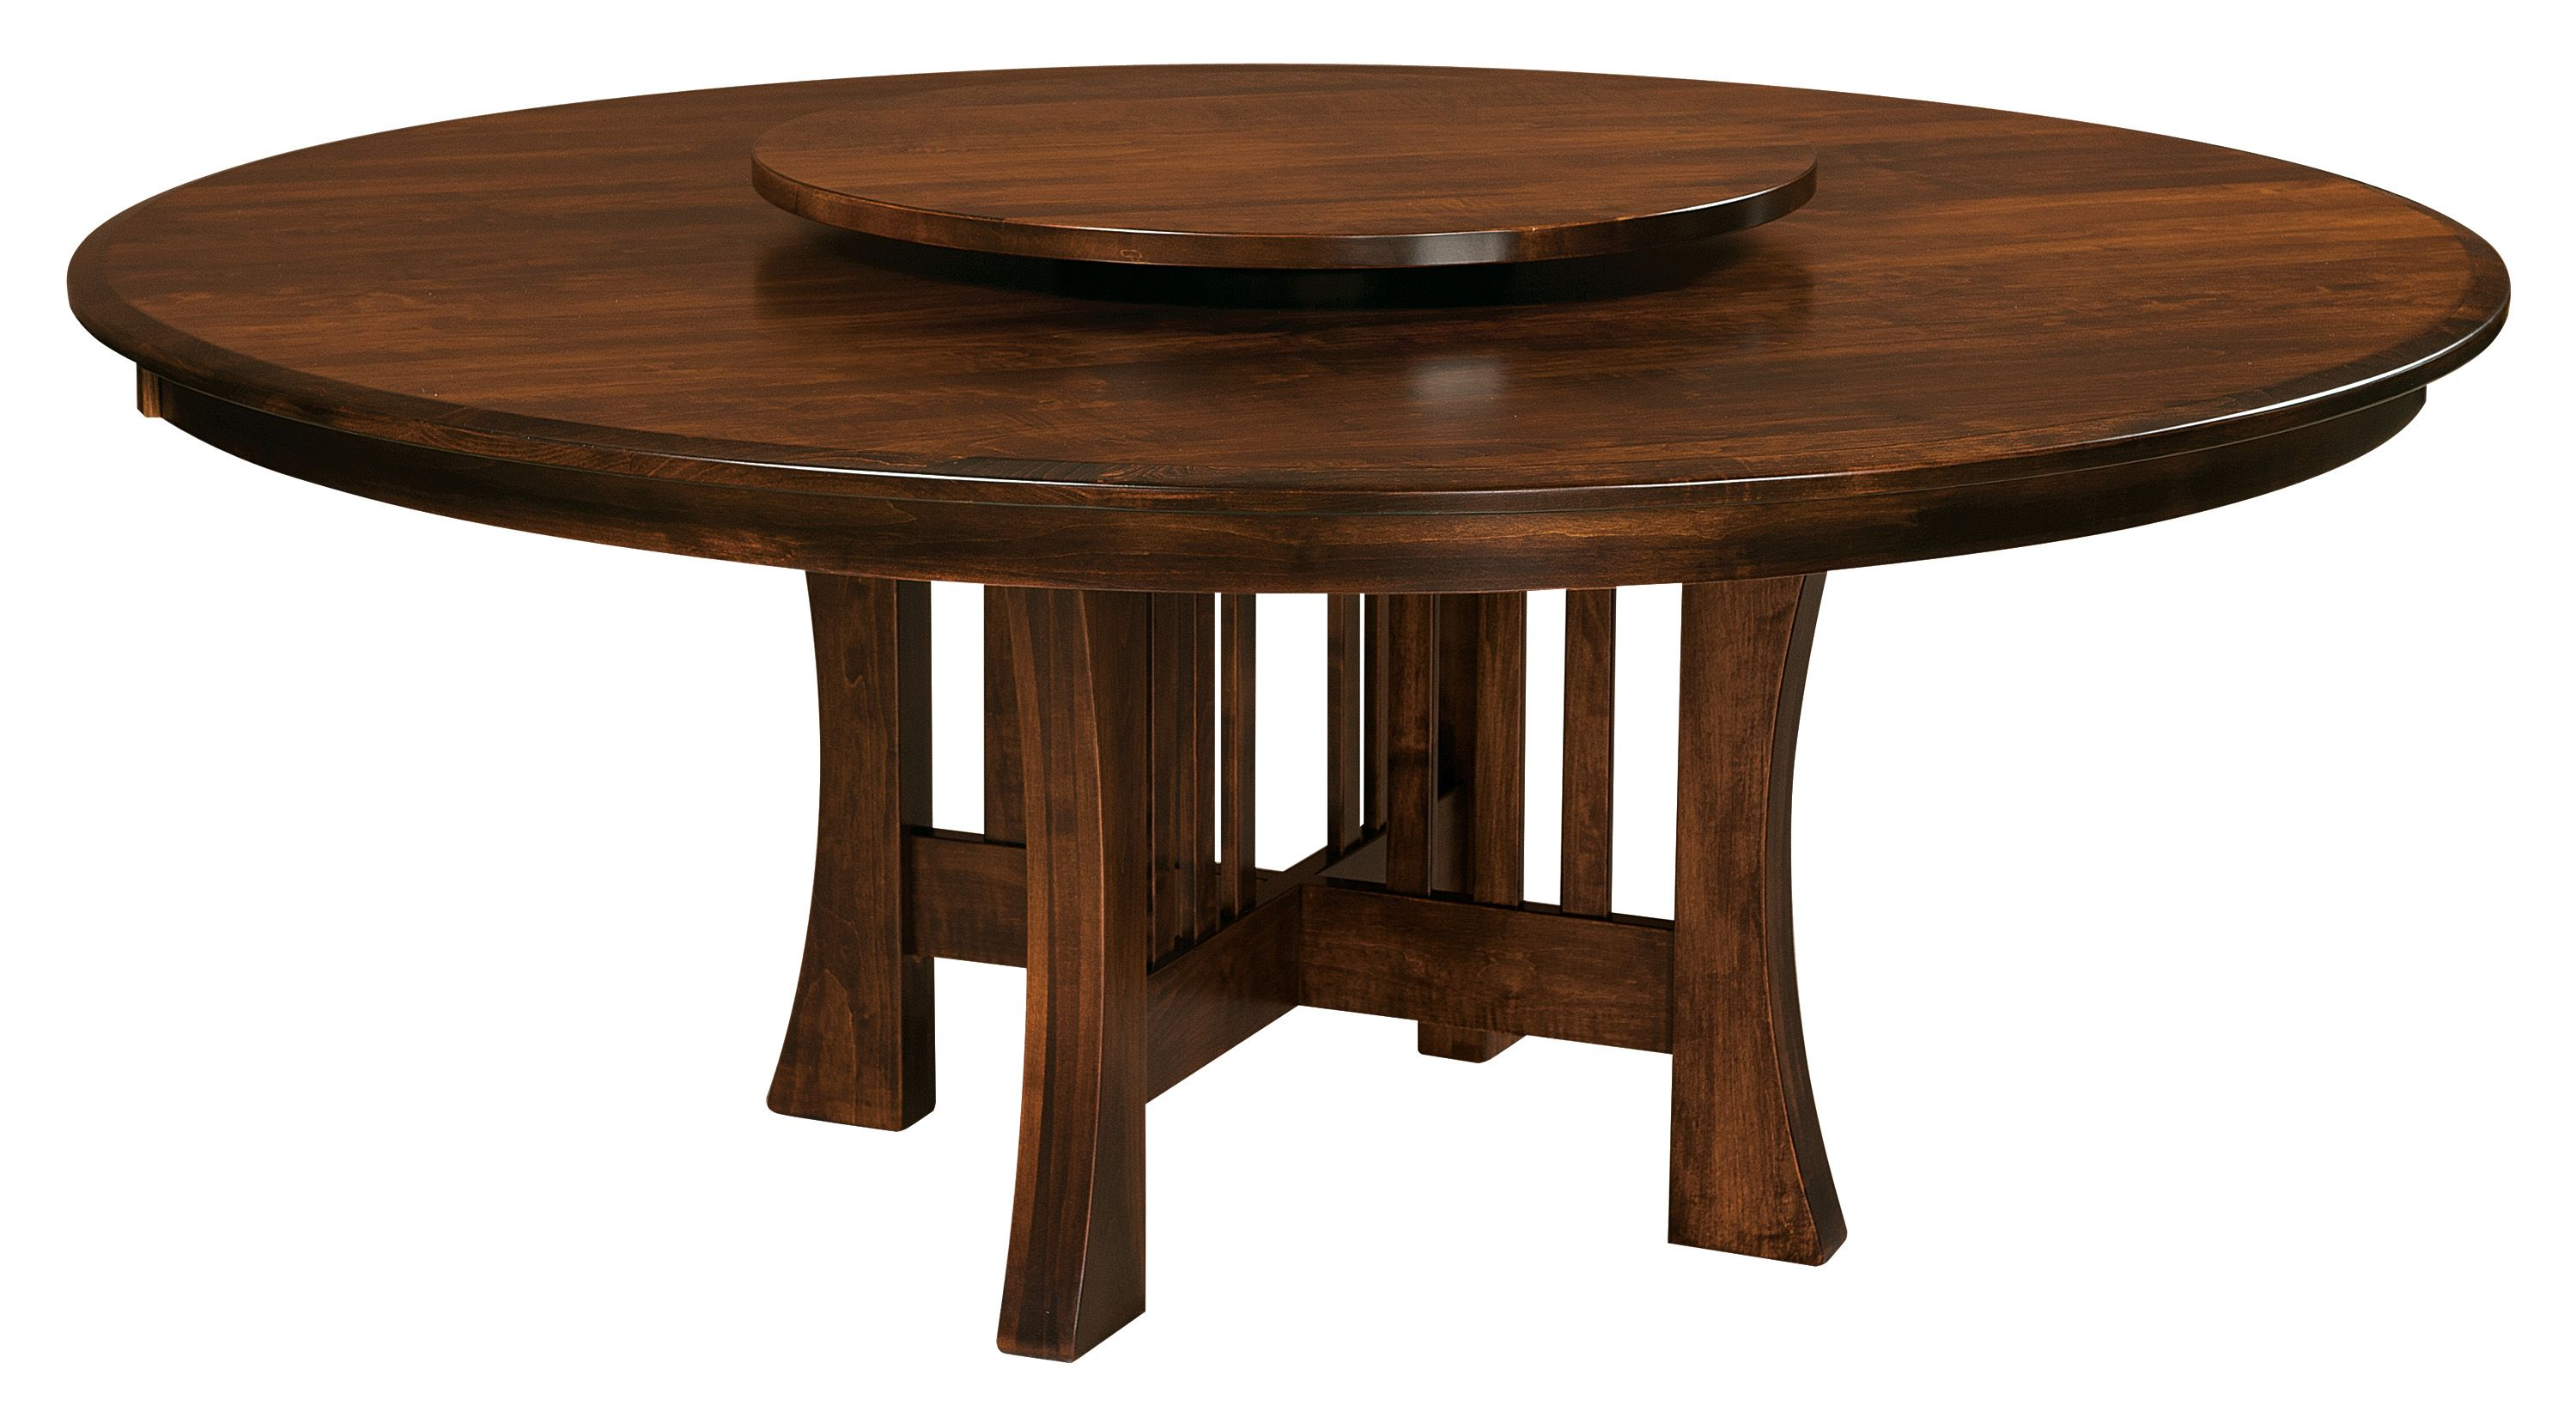 Regal round pedestal dining table with lazy susan by a r t furniture - Arts Crafts Dining Table With Lazy Susan